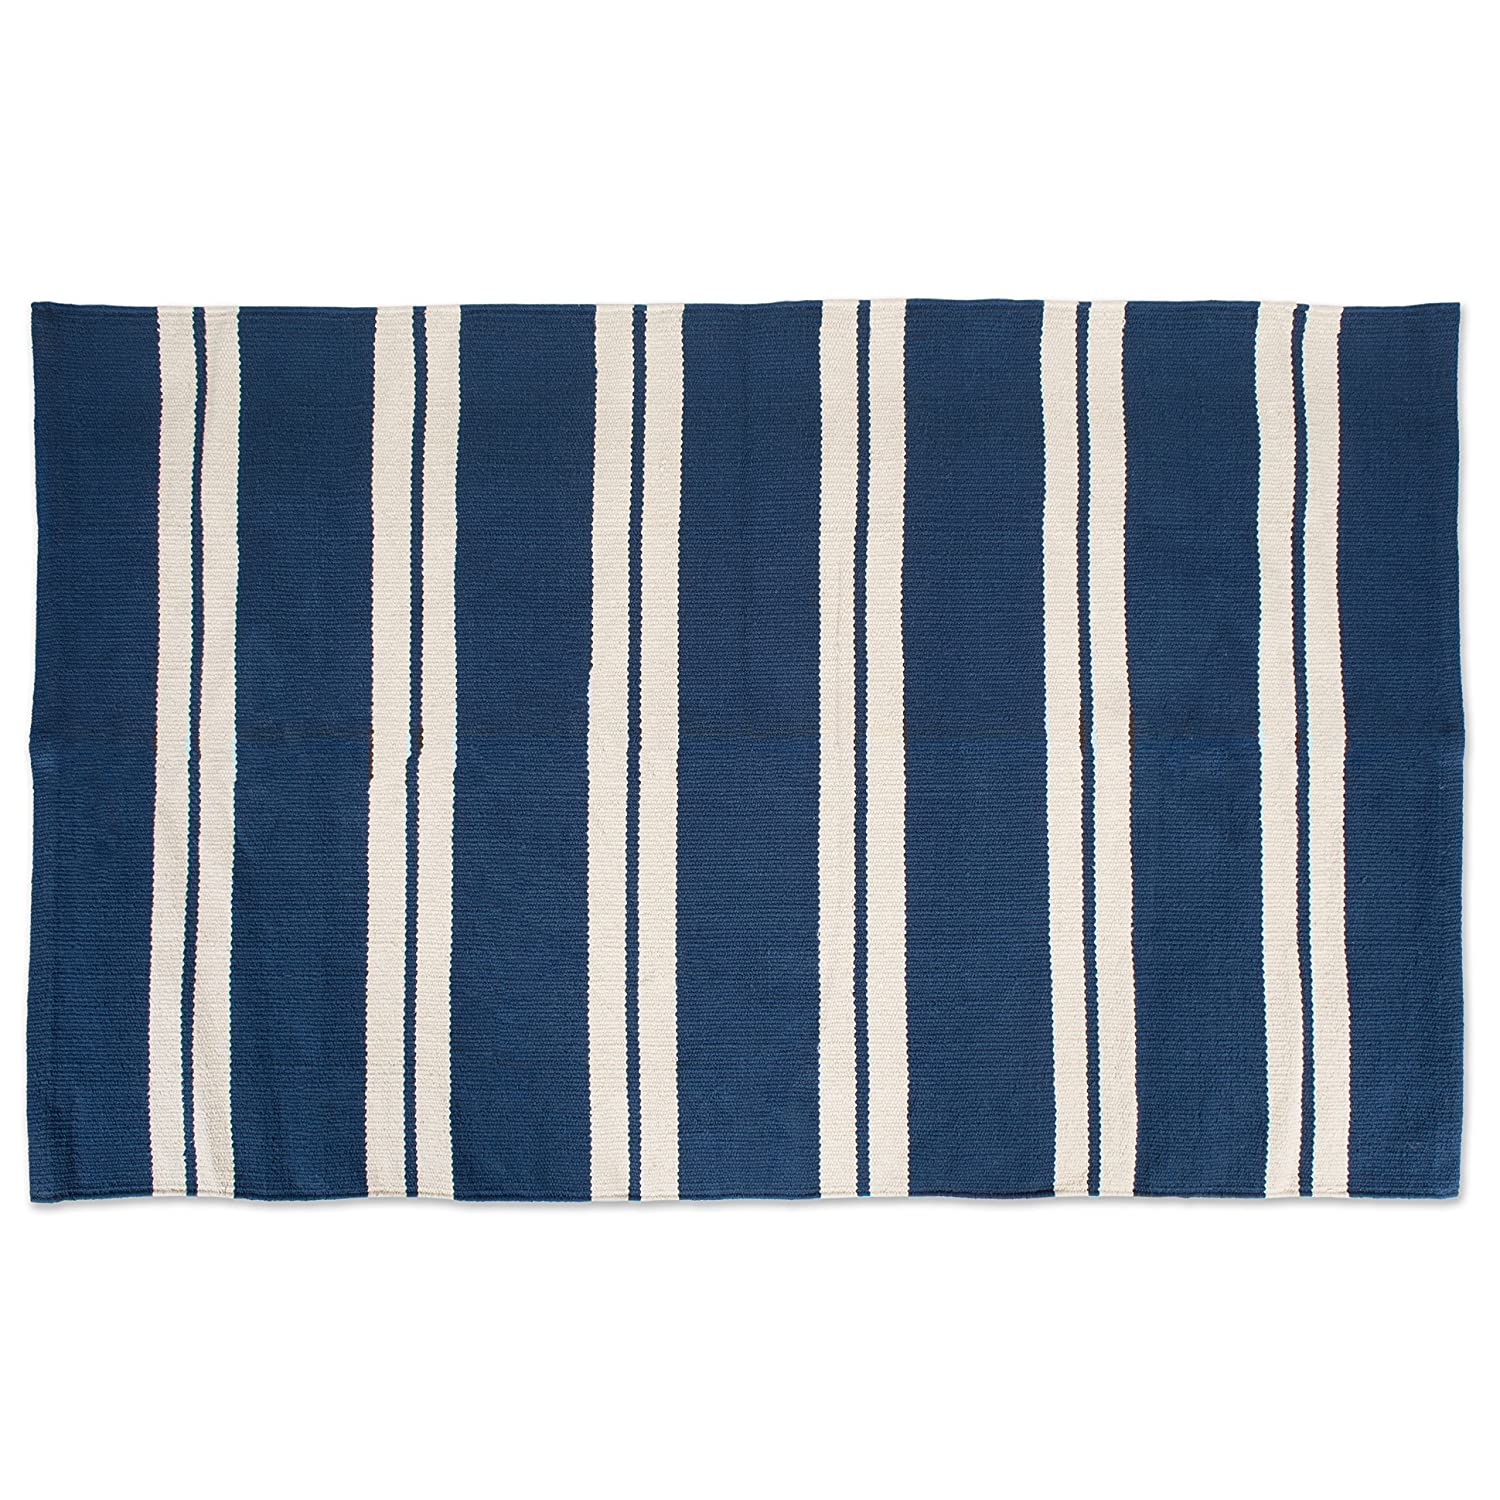 "J&M Home Fashions Cotton Fashion Reversible Indoor/Outdoor Cabana Stripe Woven Area Rag Rug, 30x48"", Unique For Bedroom, Living Room, Kitchen, Laundry, Wash Room, Nursery-Navy Blue"